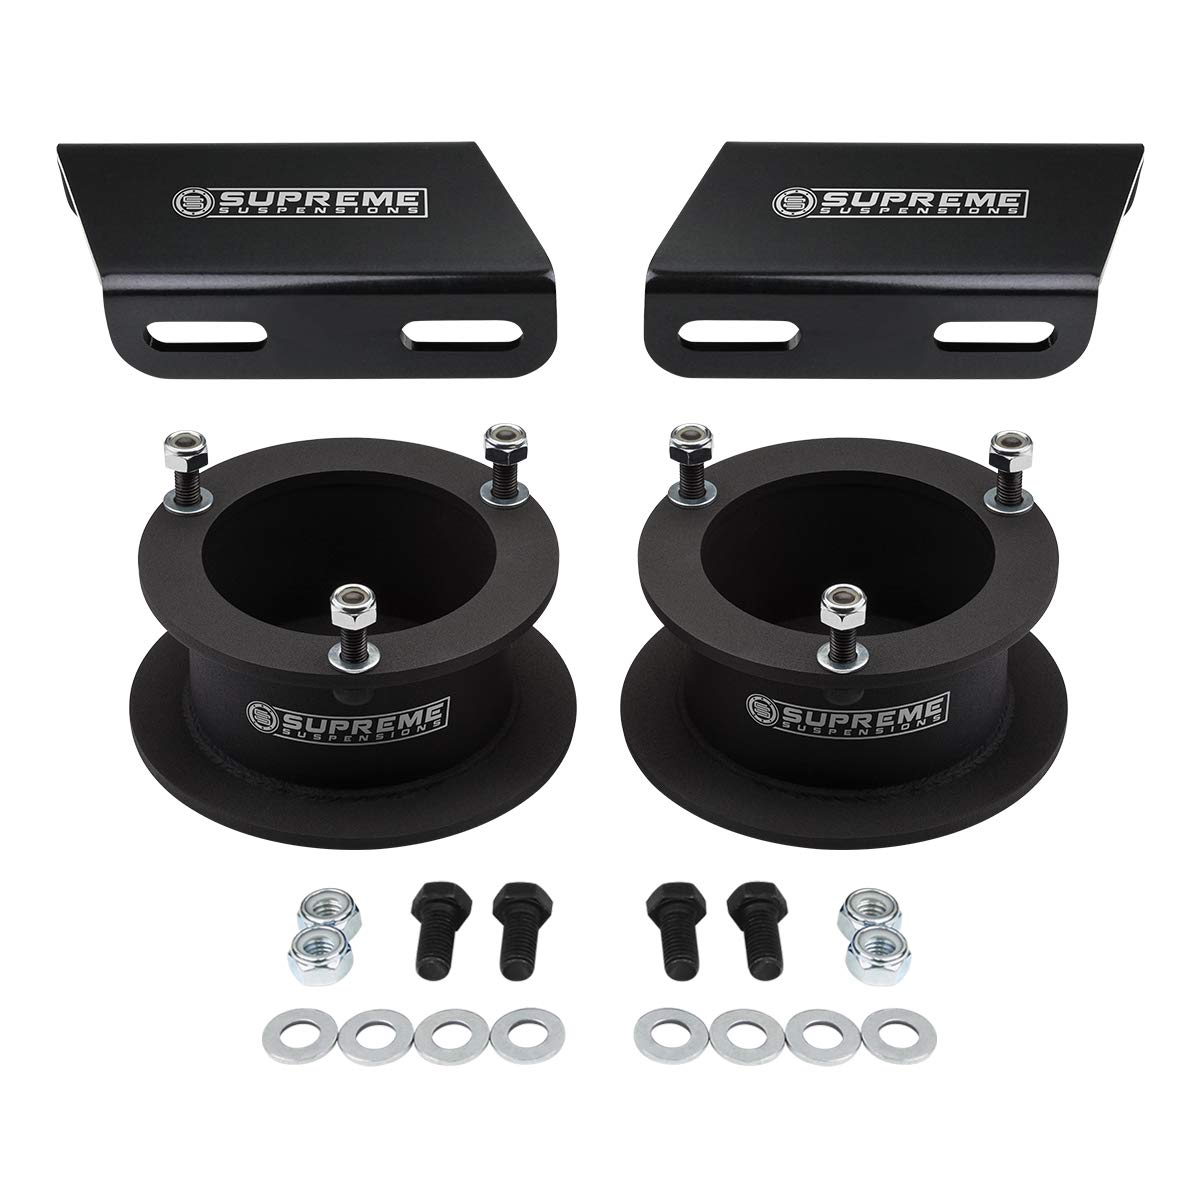 Supreme Suspensions Tig Welded 2WD 4x2 Pro Front Leveling Kit for 1994-2018 Dodge Ram 1500 2.5 High-Strength Steel Spring Spacers Lift Kit